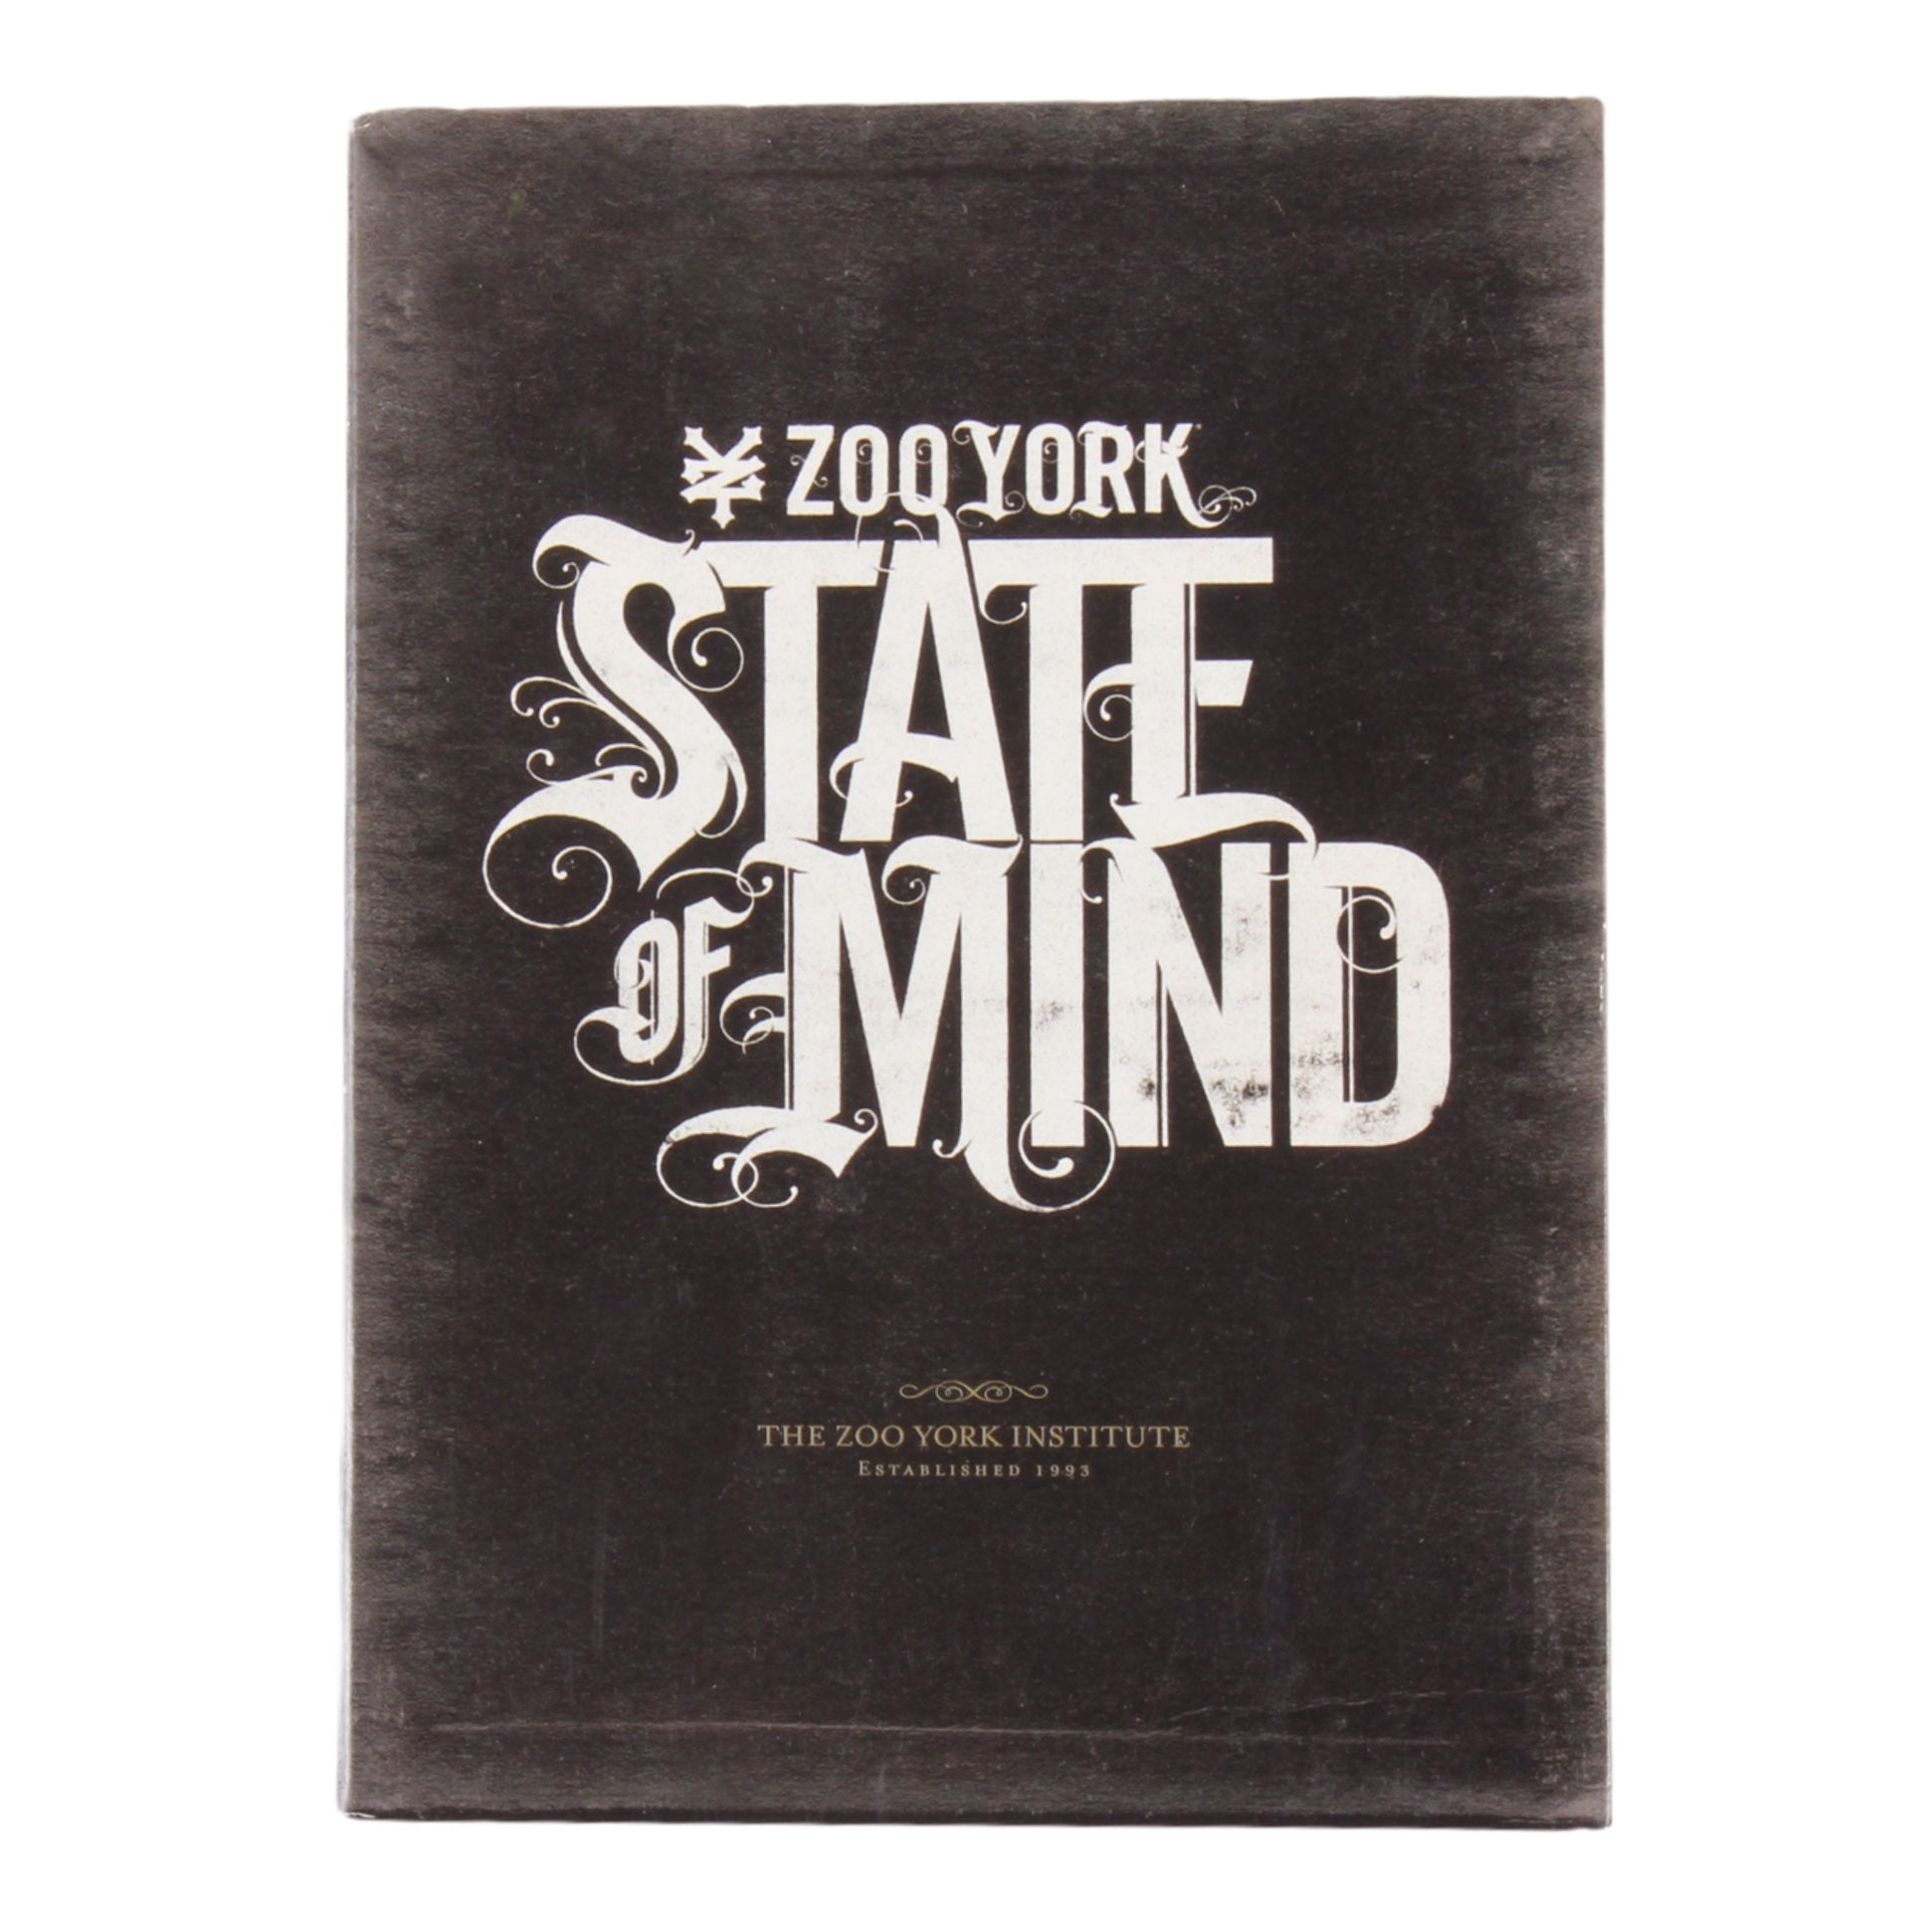 Zoo York State of Mind (2009)